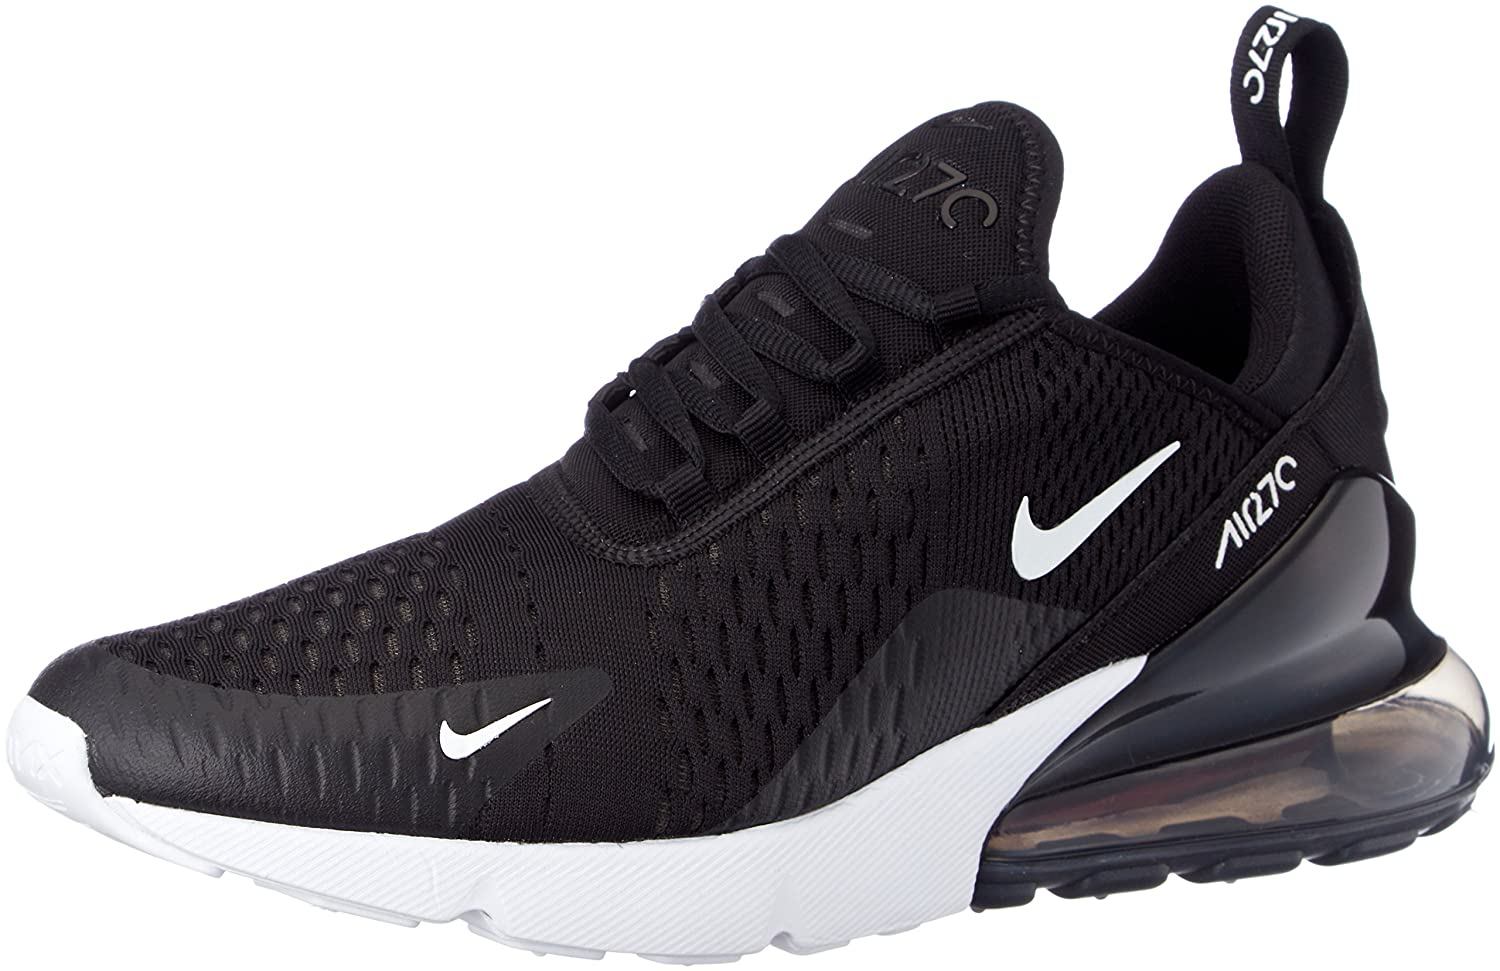 5f80b68073 NIKE Air Max 270 Mens Casual Shoes Black/Anthracite/White ah8050-002 (8  B(M) US): Buy Online at Low Prices in India - Amazon.in